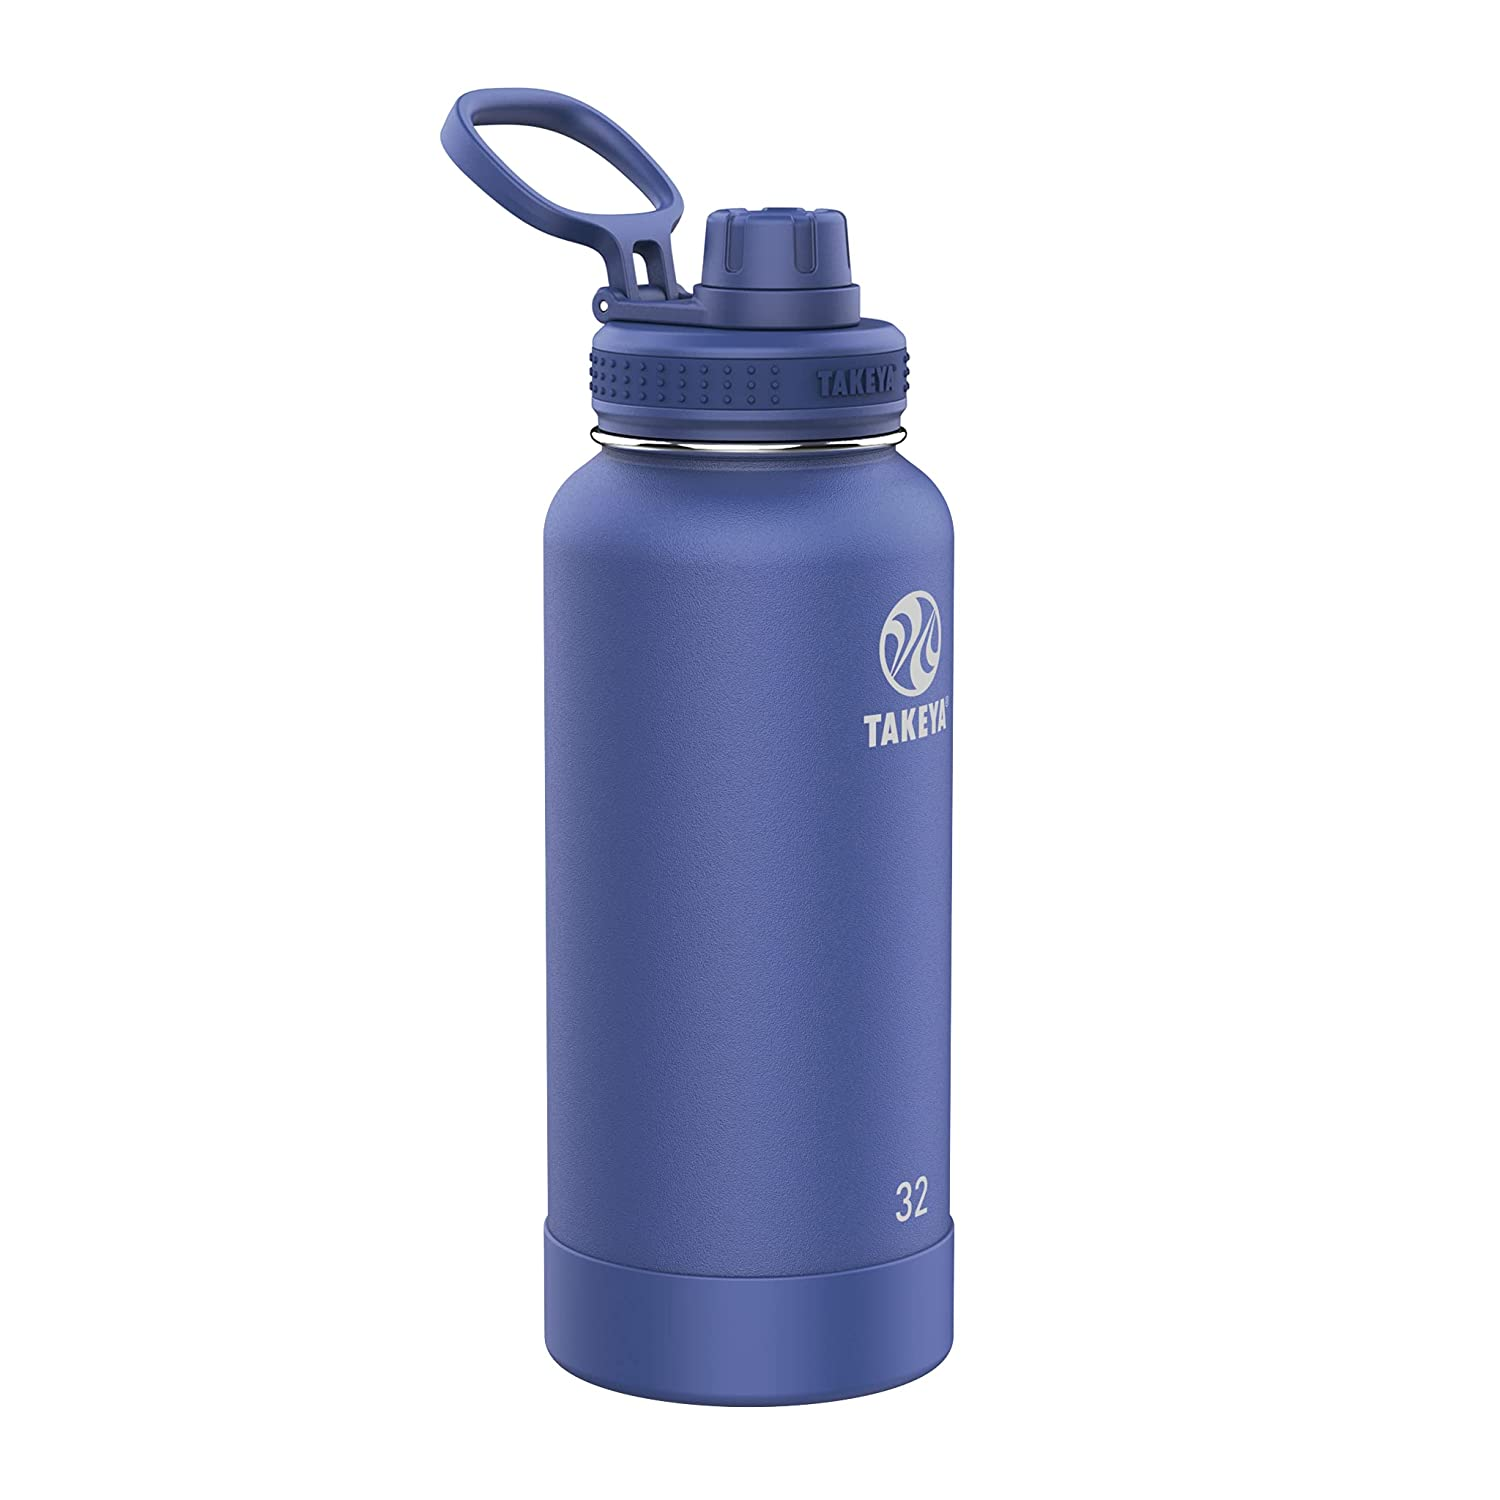 Takeya Pickleball Time sale Insulated Water Bottle with 3 Lid Large discharge sale Spout Sport